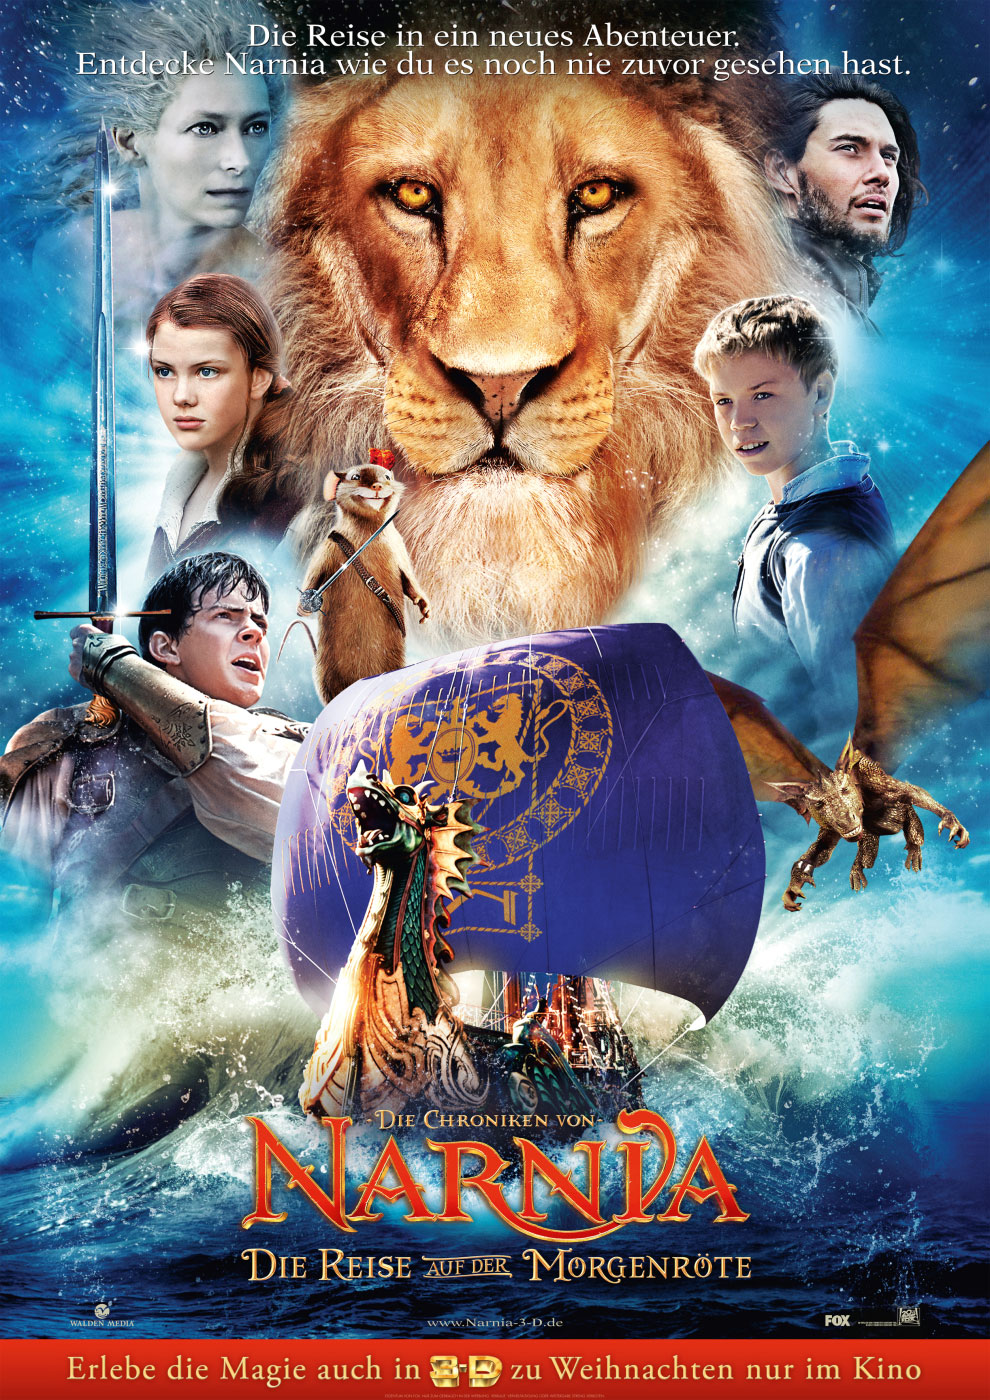 http://img3.wikia.nocookie.net/__cb20101112132648/narnia/de/images/a/a5/Narnia-3-dawn-treader.jpg